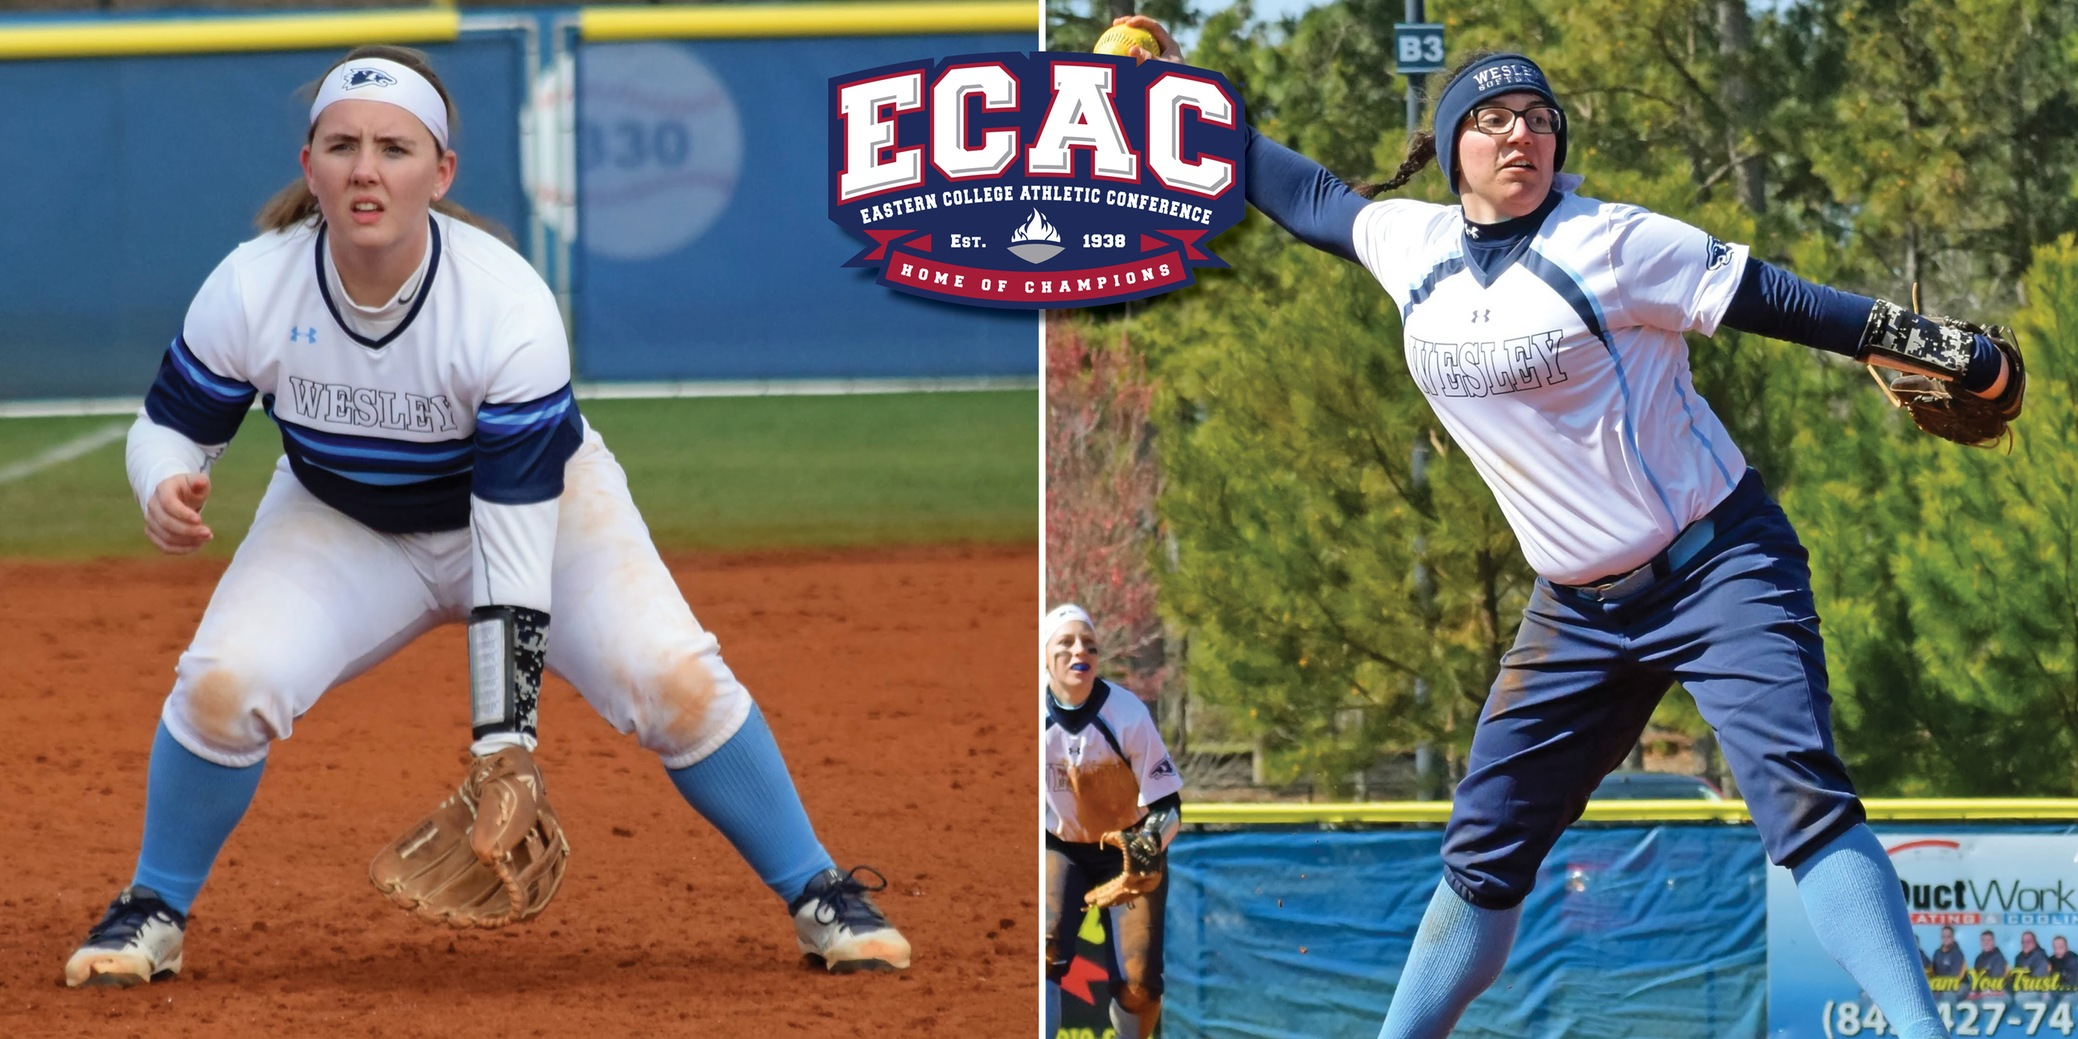 Royer, Loukopoulos awarded ECAC Players of the Week